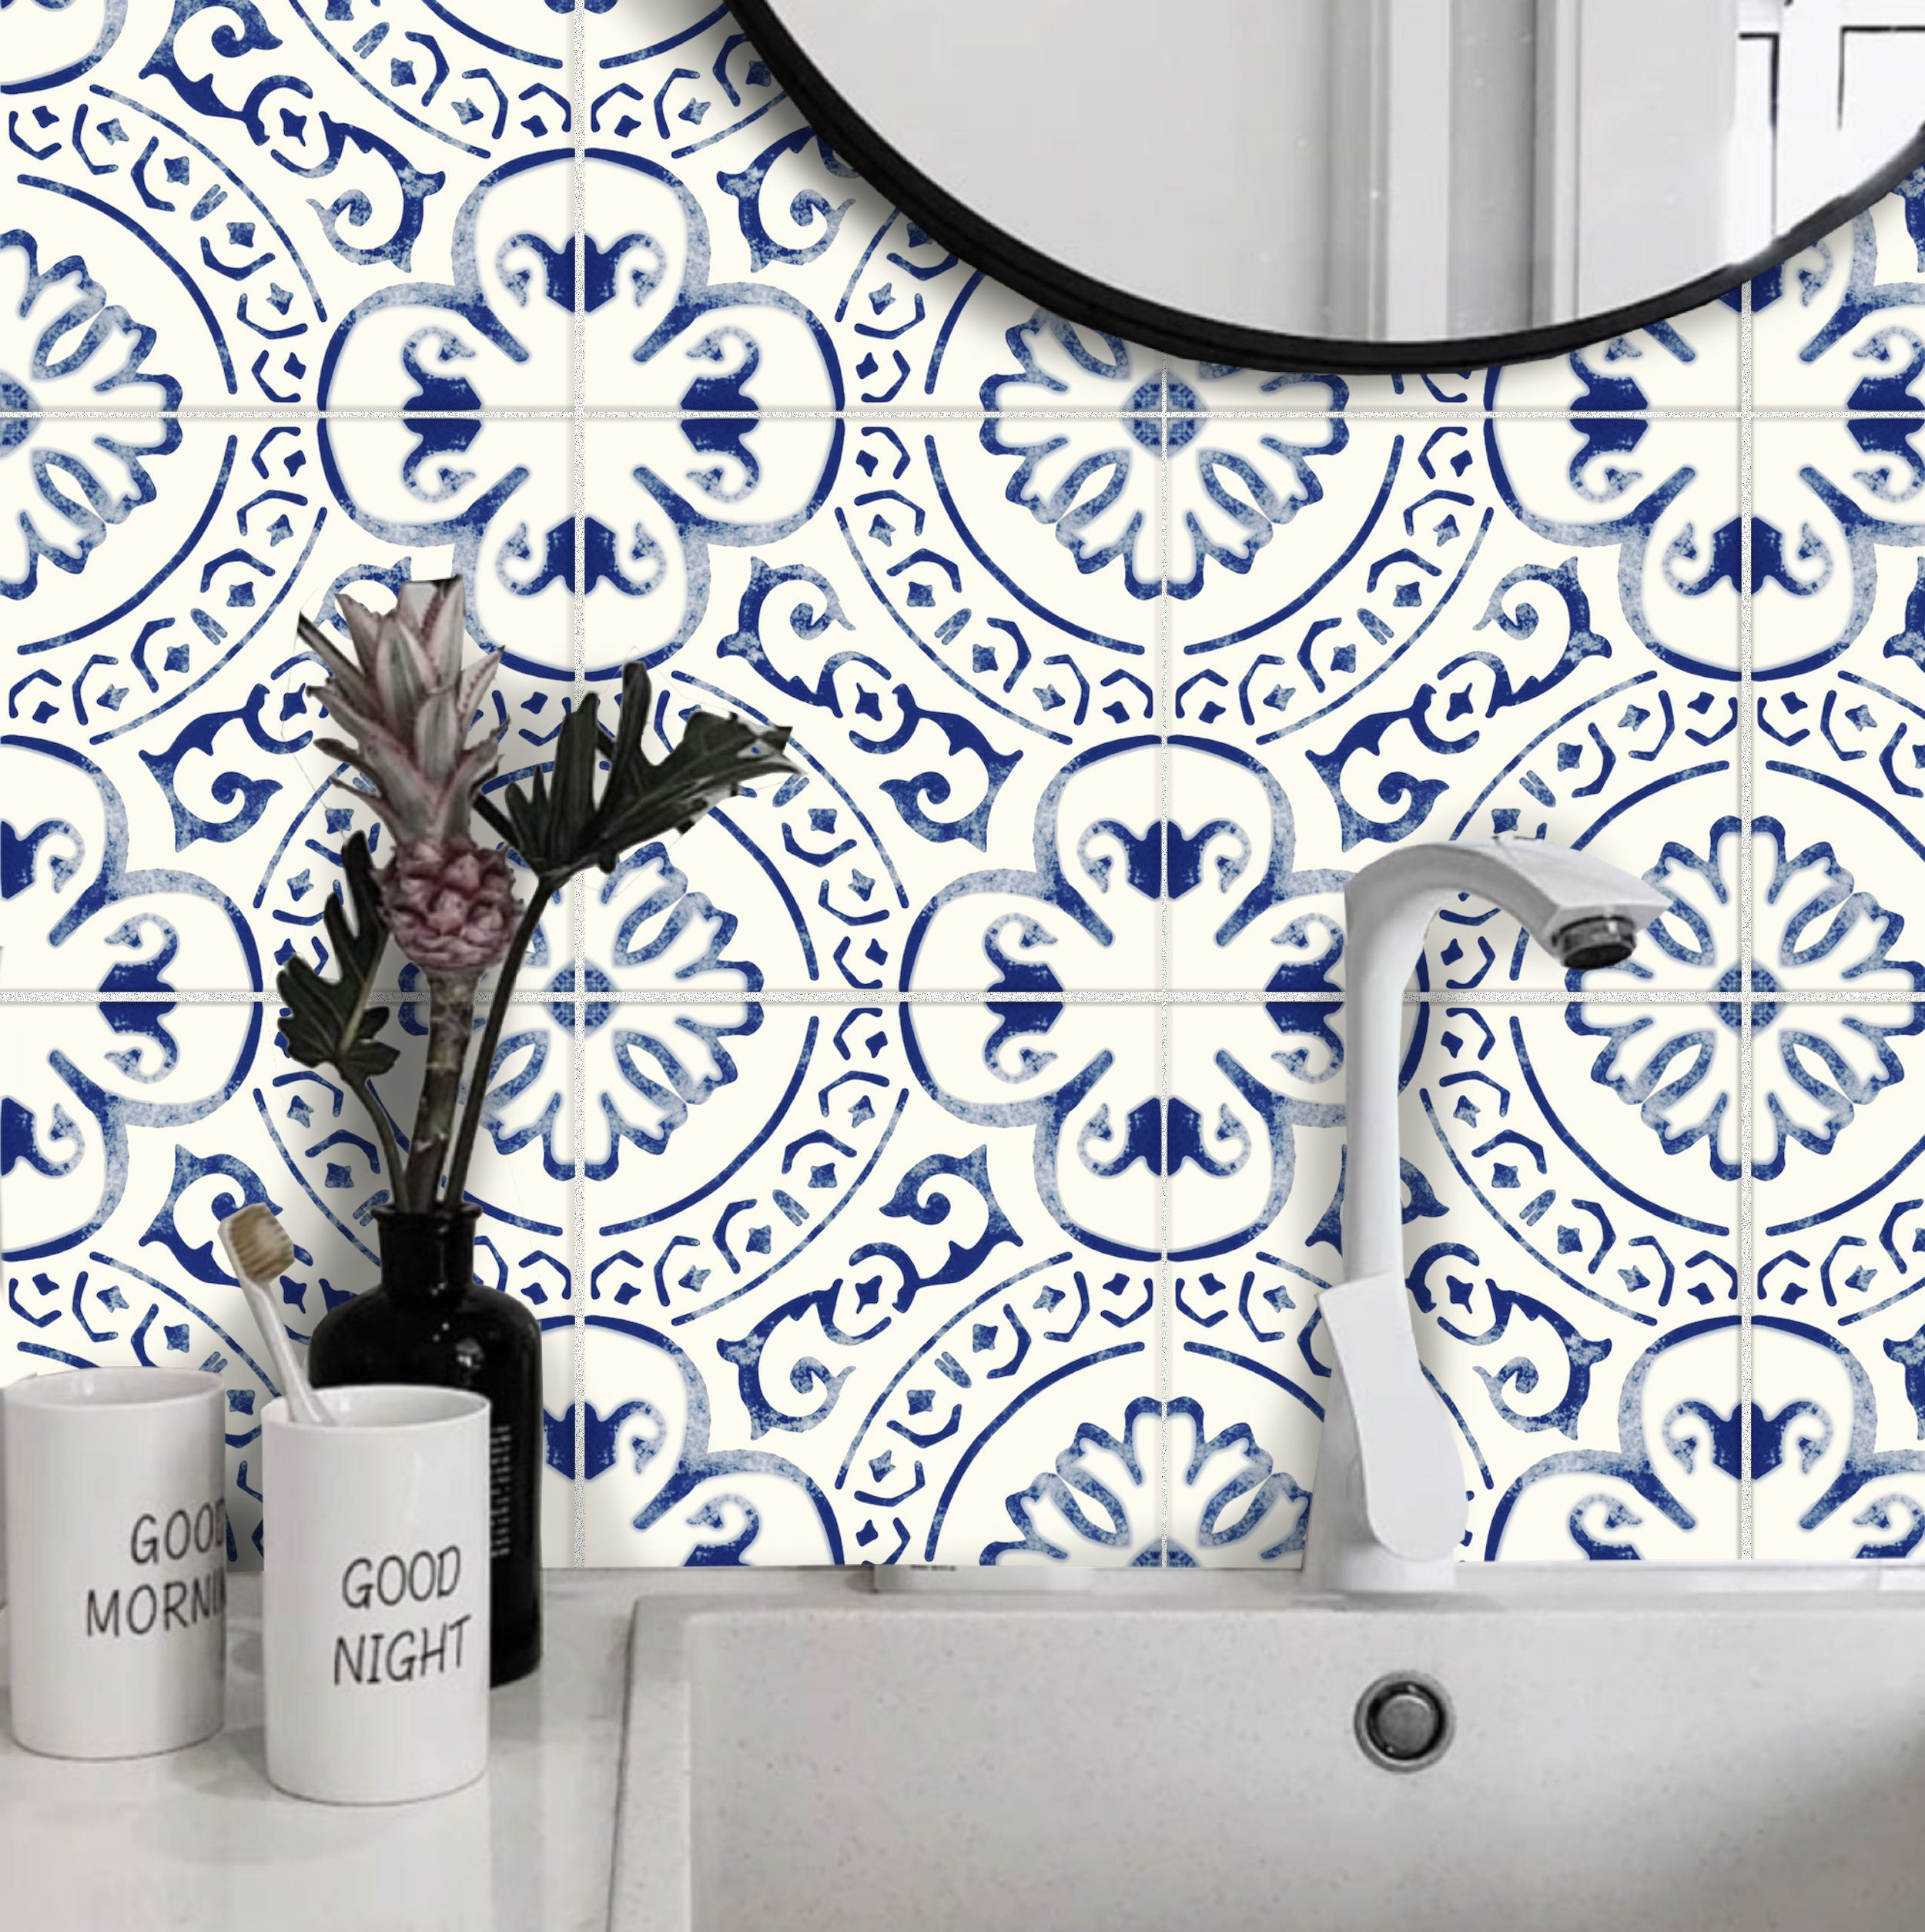 Tile Sticker Kitchen Bath Floor Wall Waterproof Removable Peel N Stick A72n Navy Blue White A72n Ba In 2020 Tile Stickers Kitchen Wall Waterproofing Tile Decals